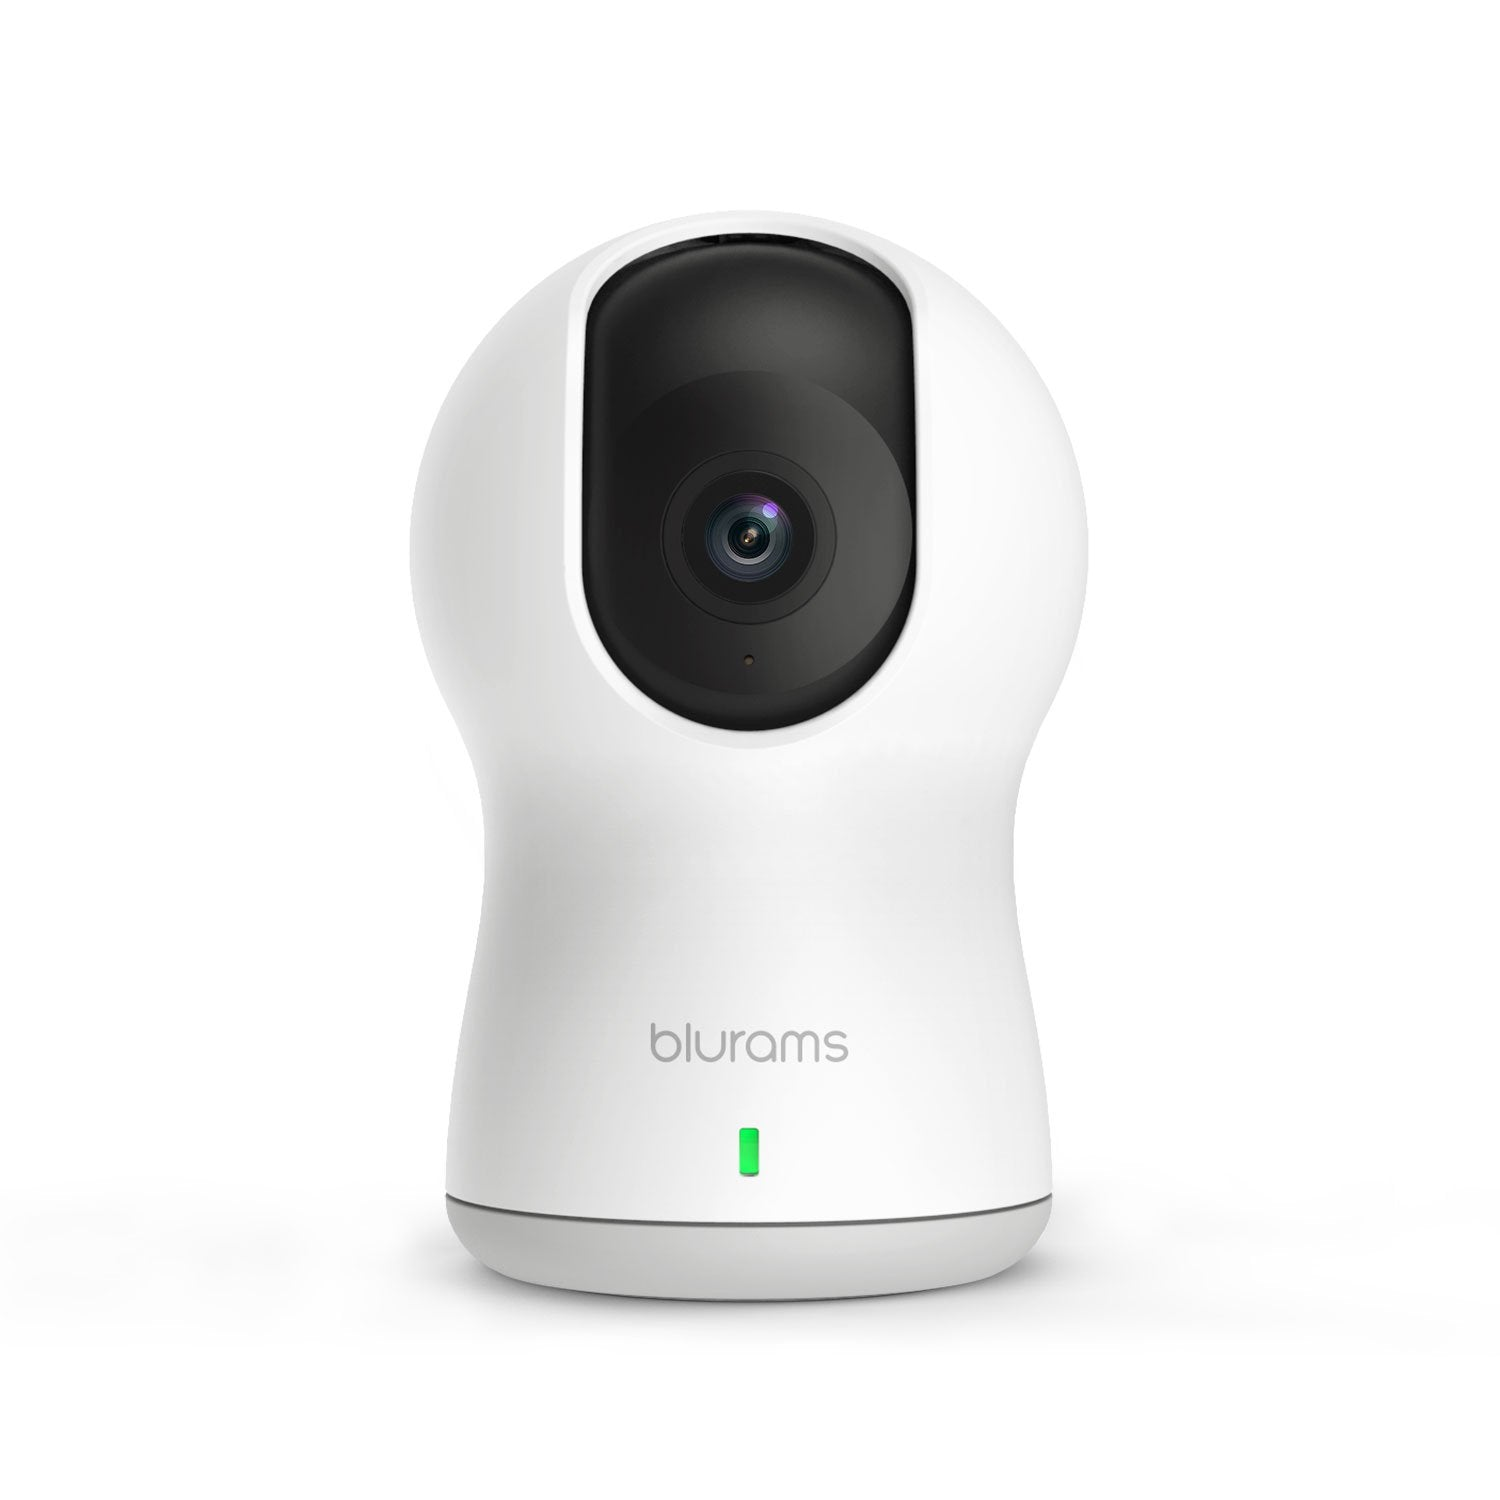 Blurams Dome Pro - Wireless Security IP Camera cctv System 1080p fhd w/ Facial Recognition - Latest Living